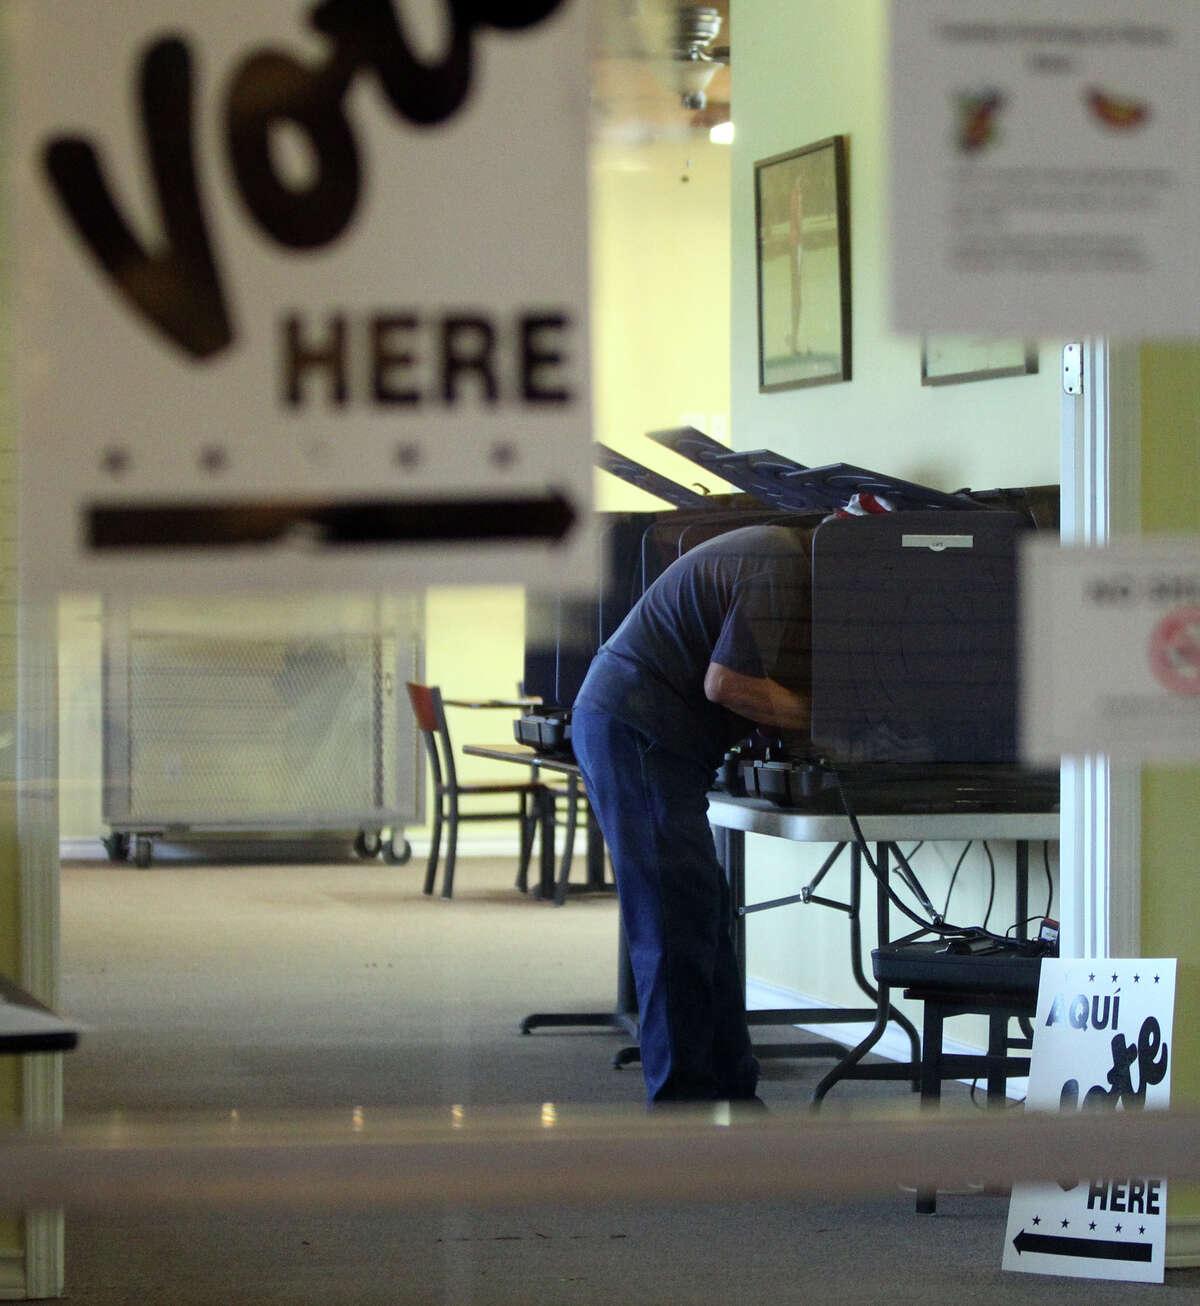 A man leans into a voting booth Tuesday, May 29, 2012, at the Olmos Basin Golf Course a few minutes after 7 a.m.